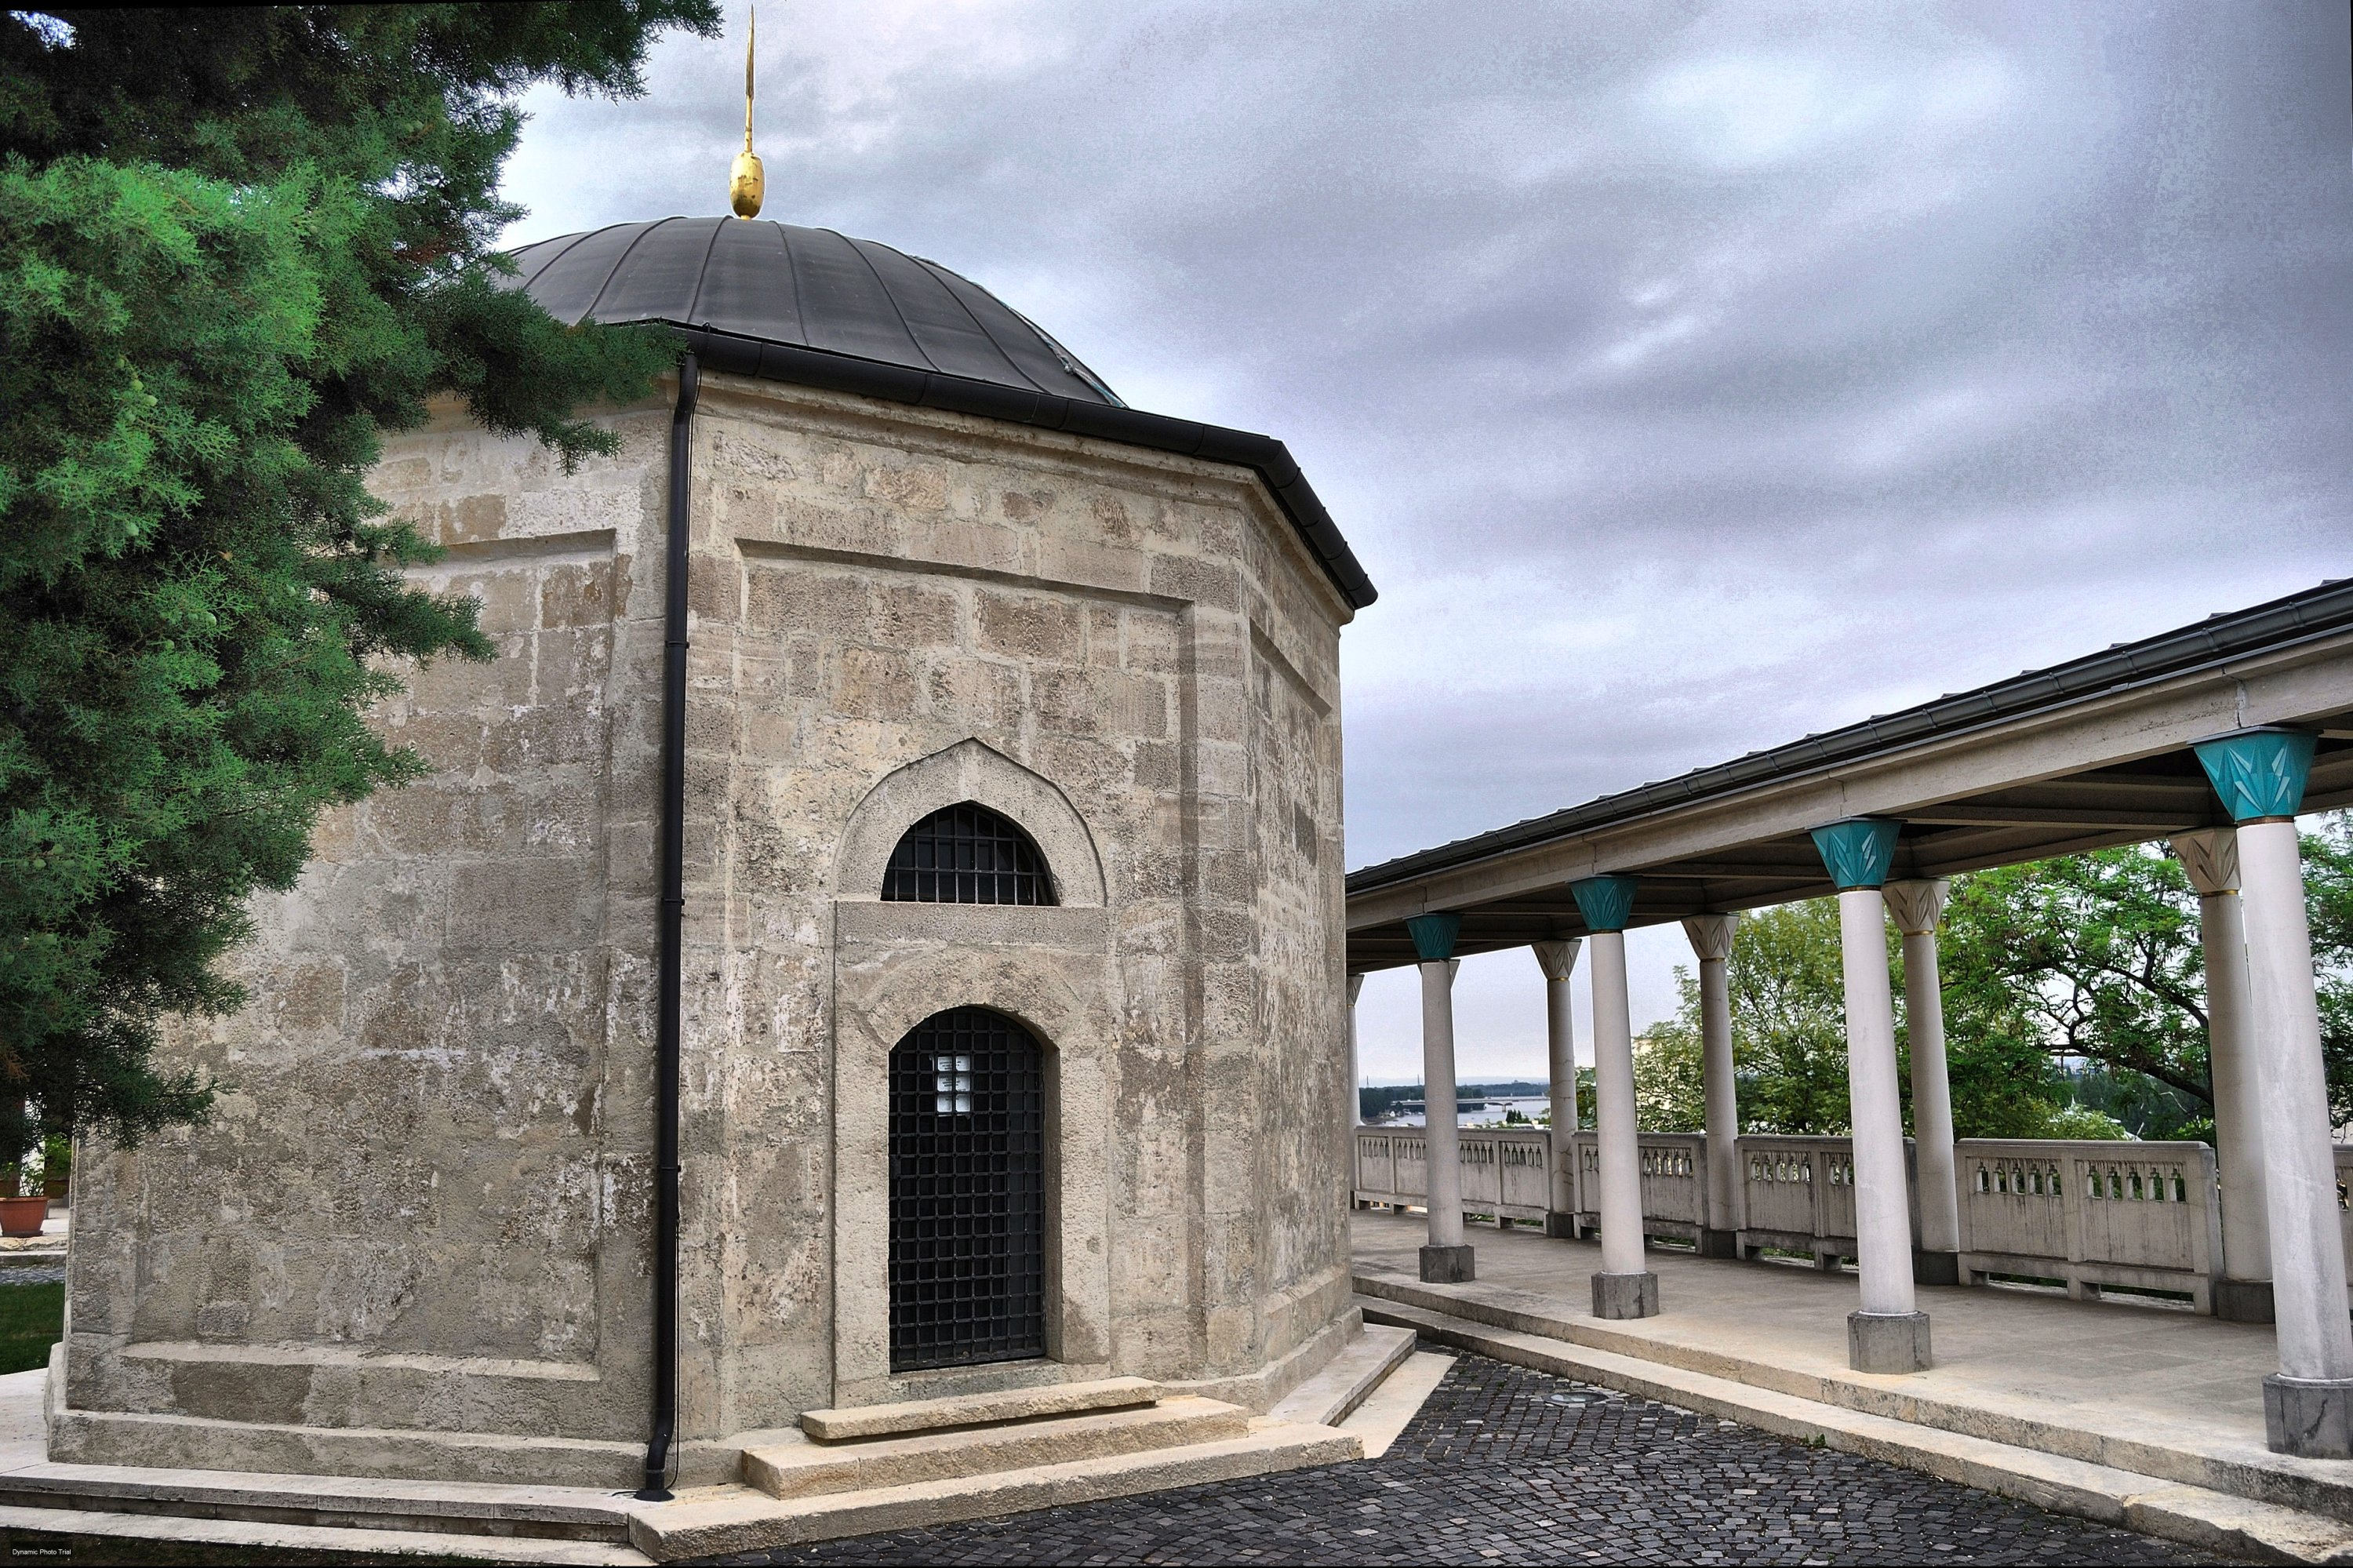 The renovated Ottoman-era Tomb of Gül Baba in Budapest, Hungary, was inaugurated in 2018.